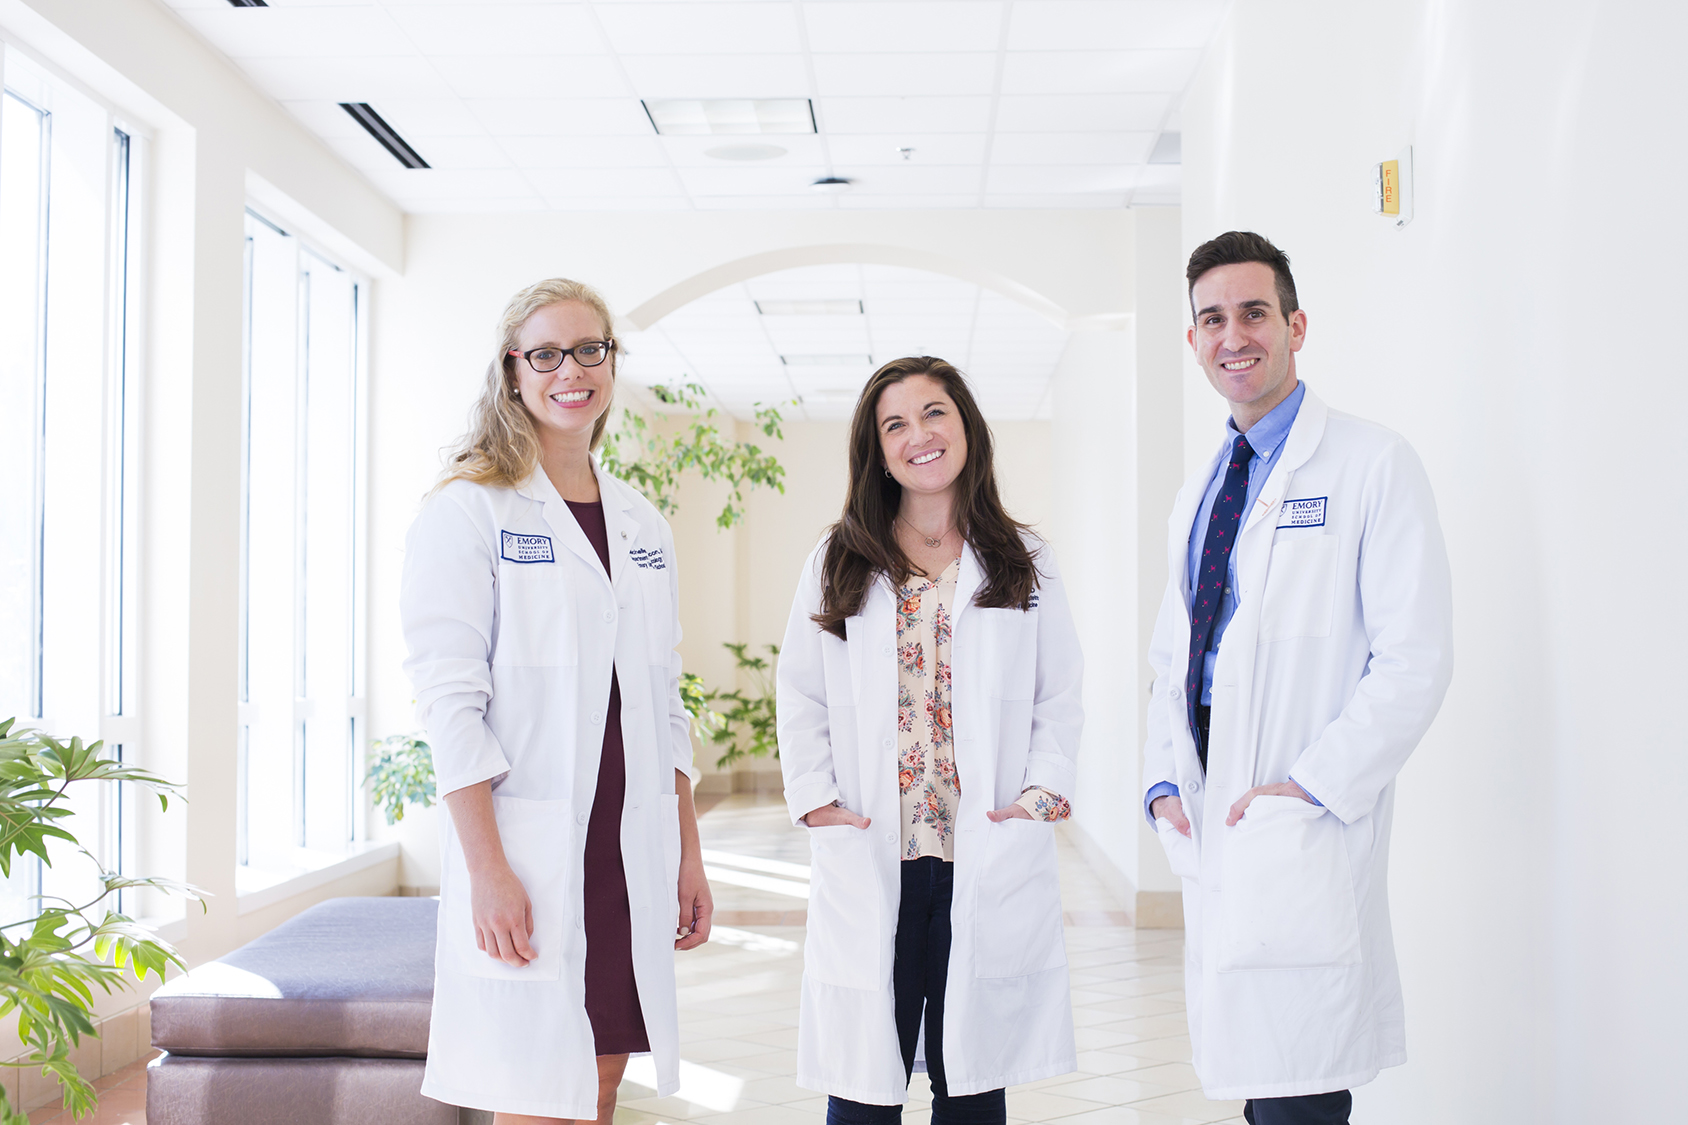 Department of Gynecology and Obstetrics | Emory School of